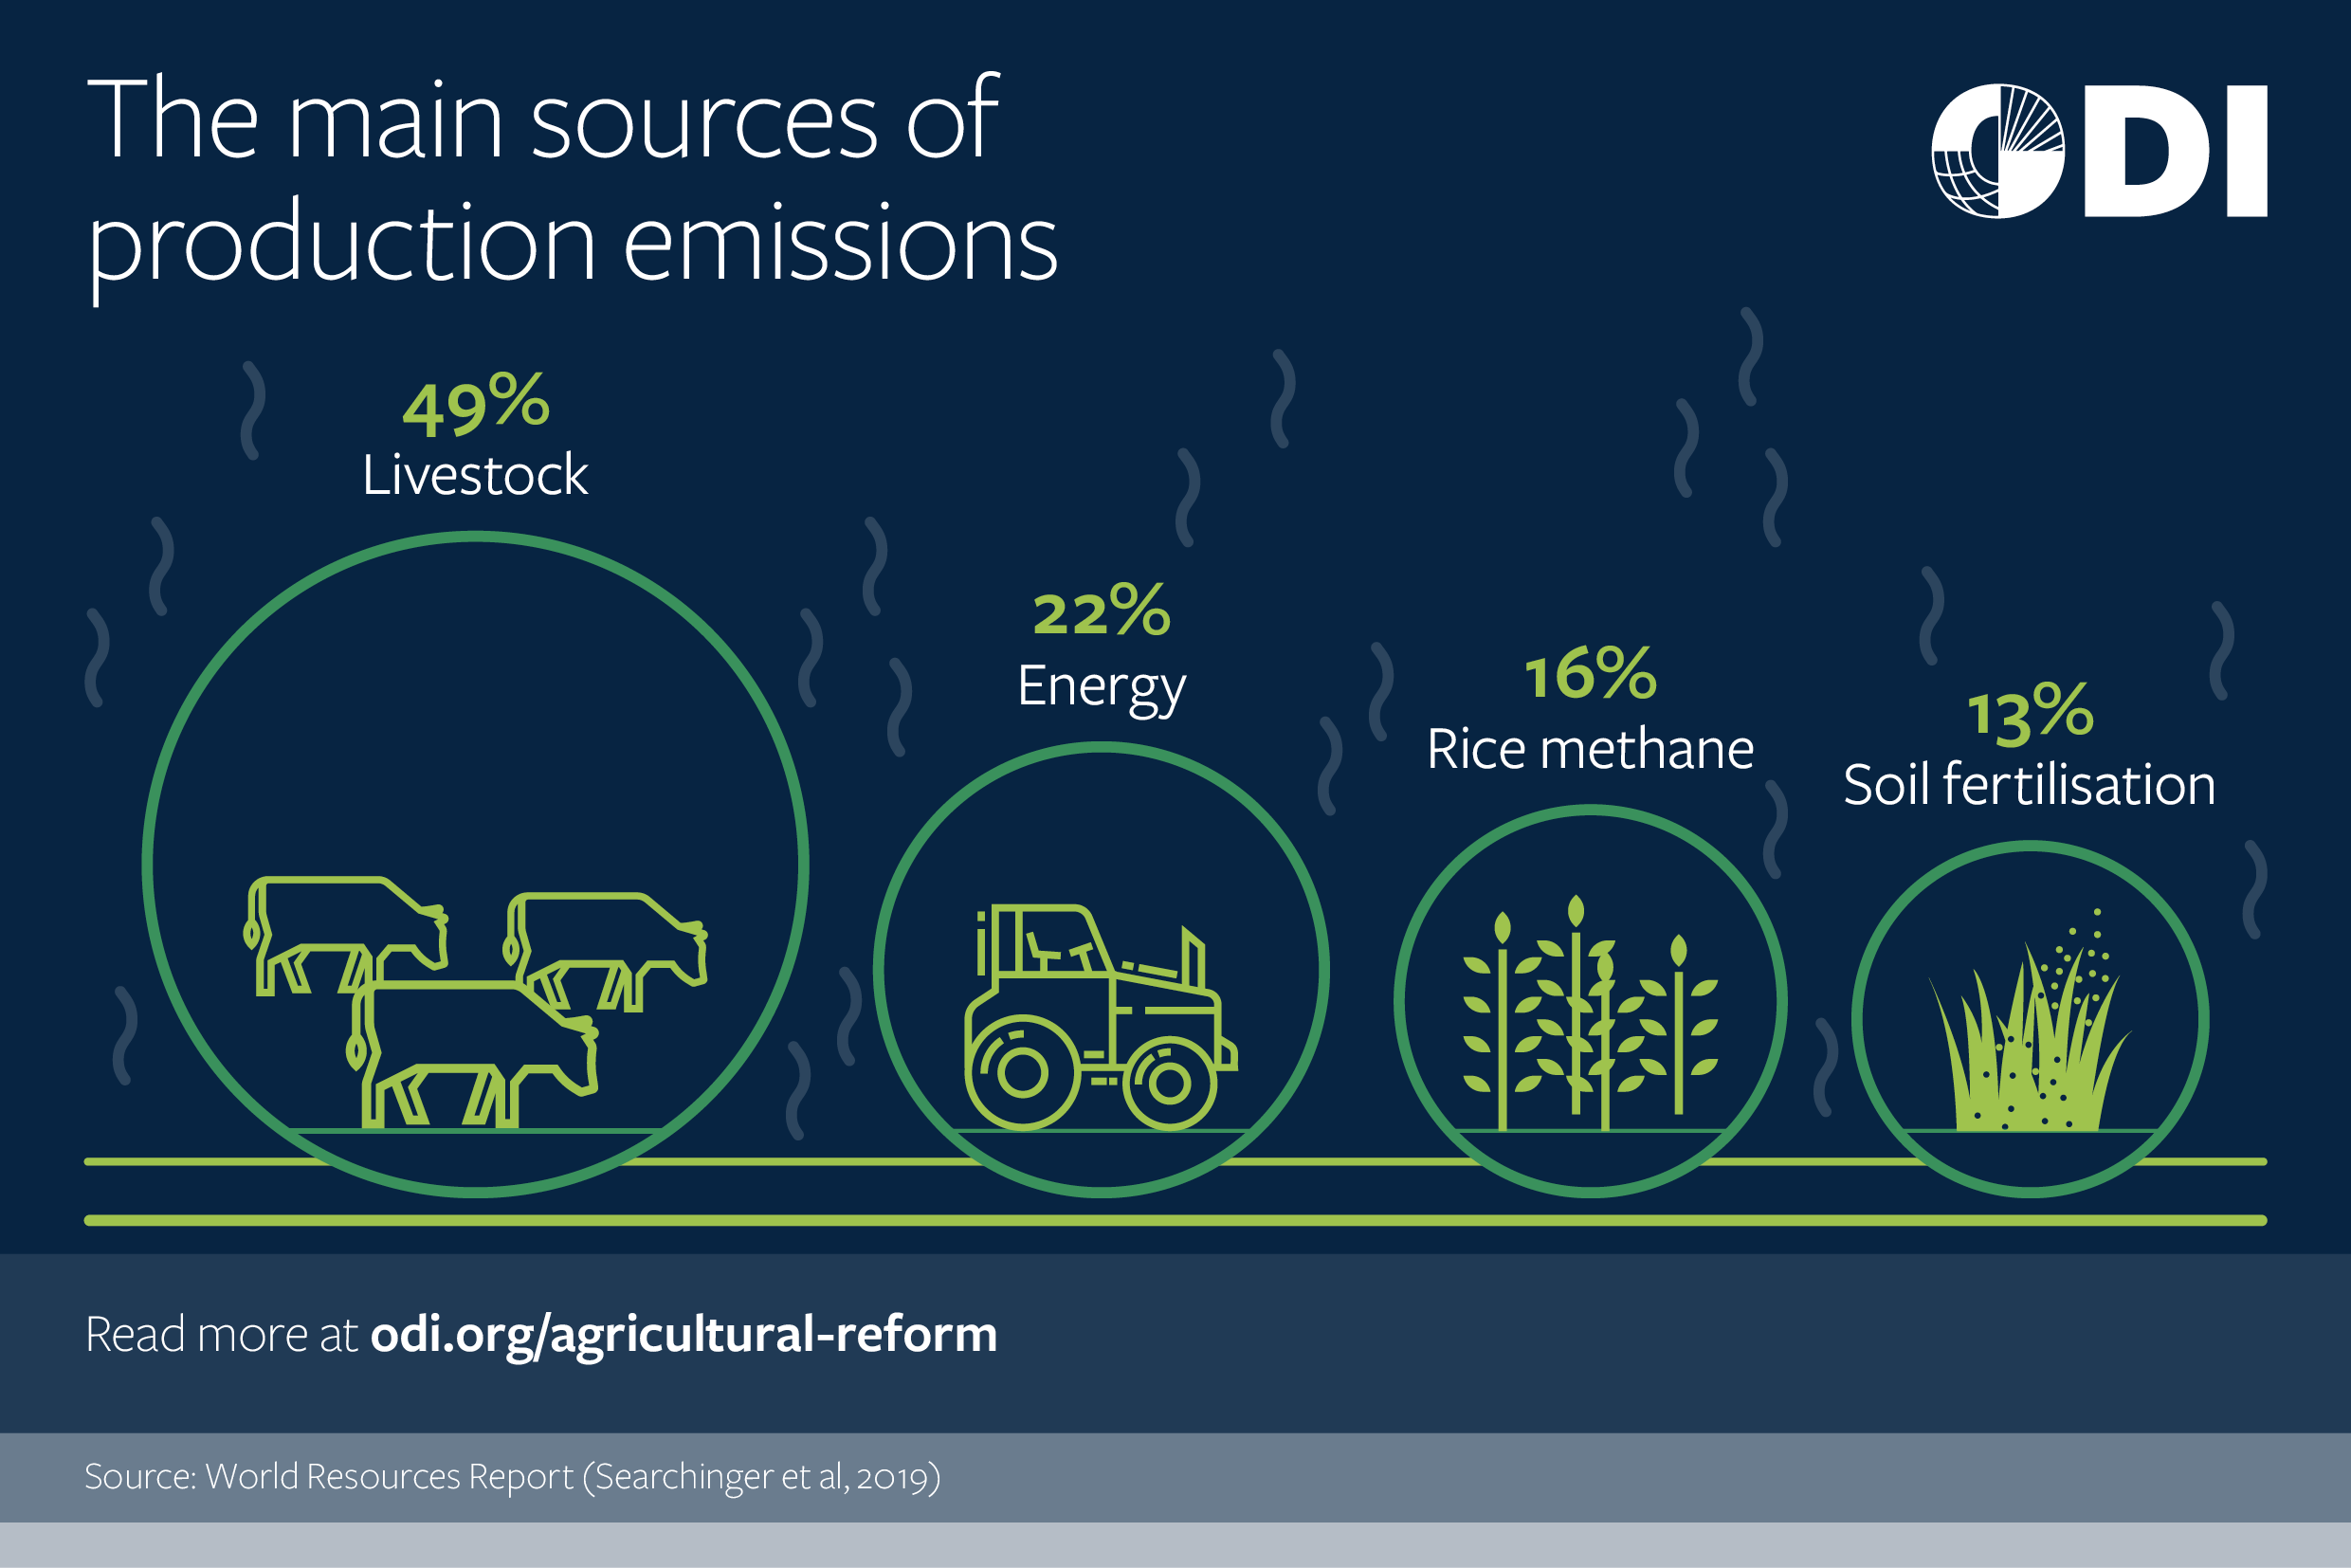 The main sources of production emissions.